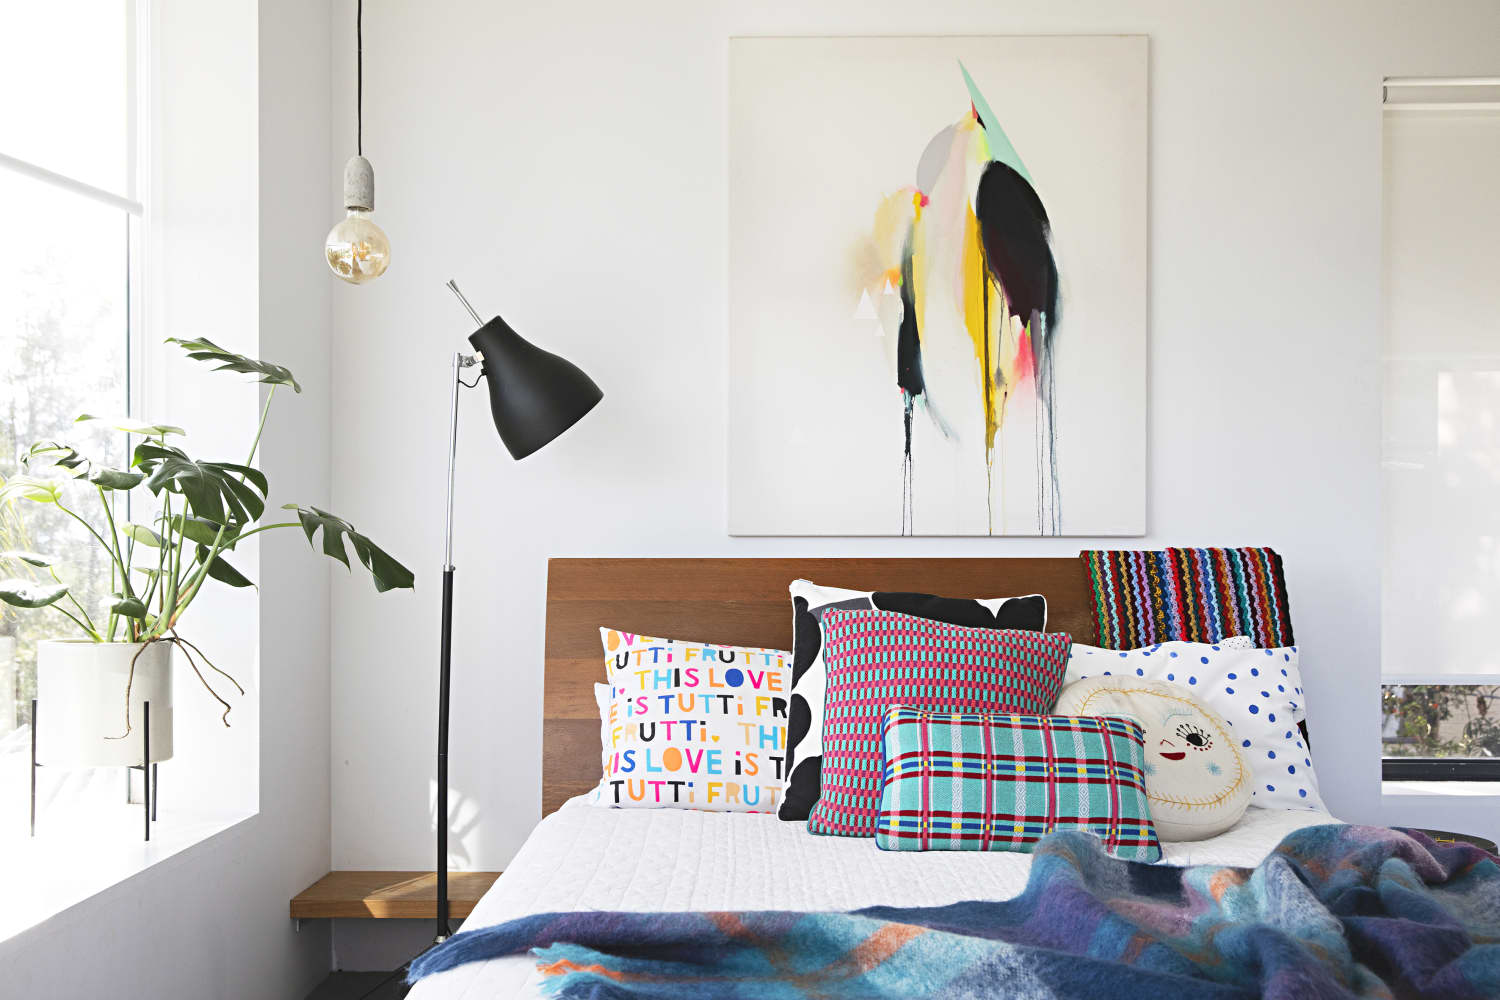 Clean Your Bedroom in 20 Minutes With This Checklist